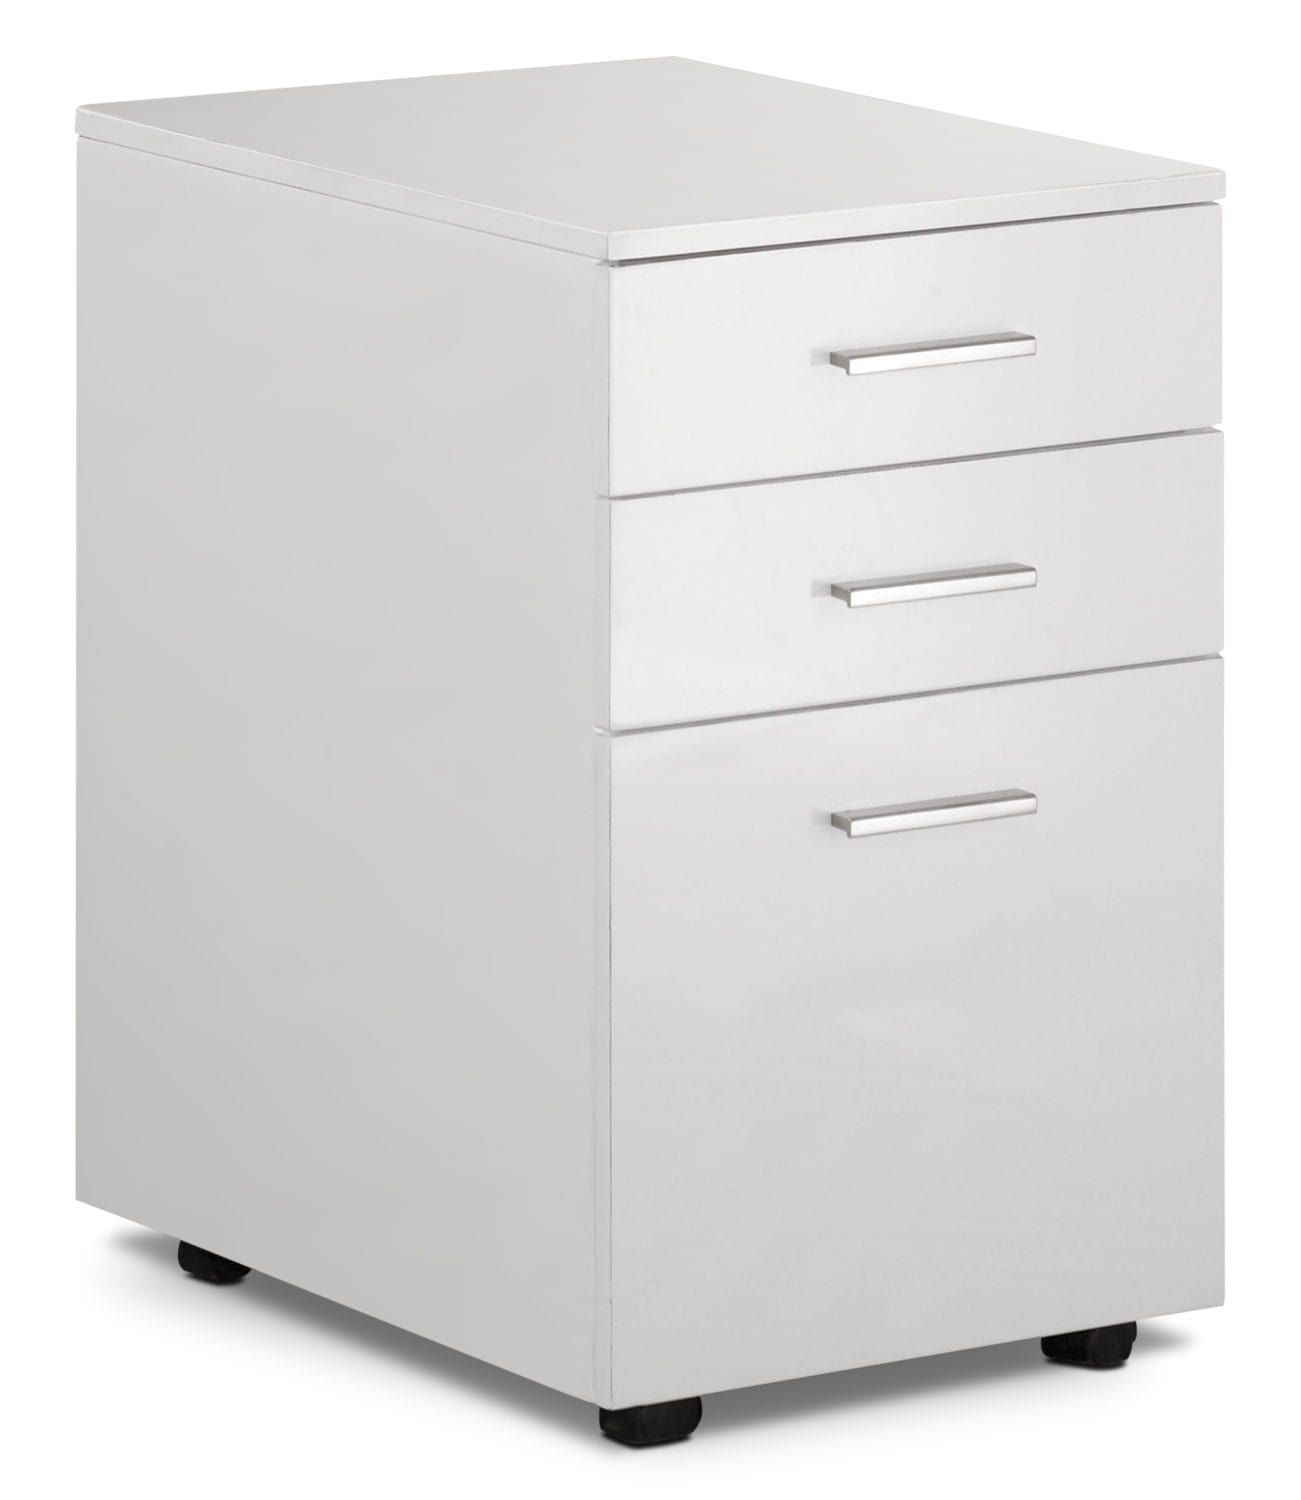 Bexley Filing Cabinet